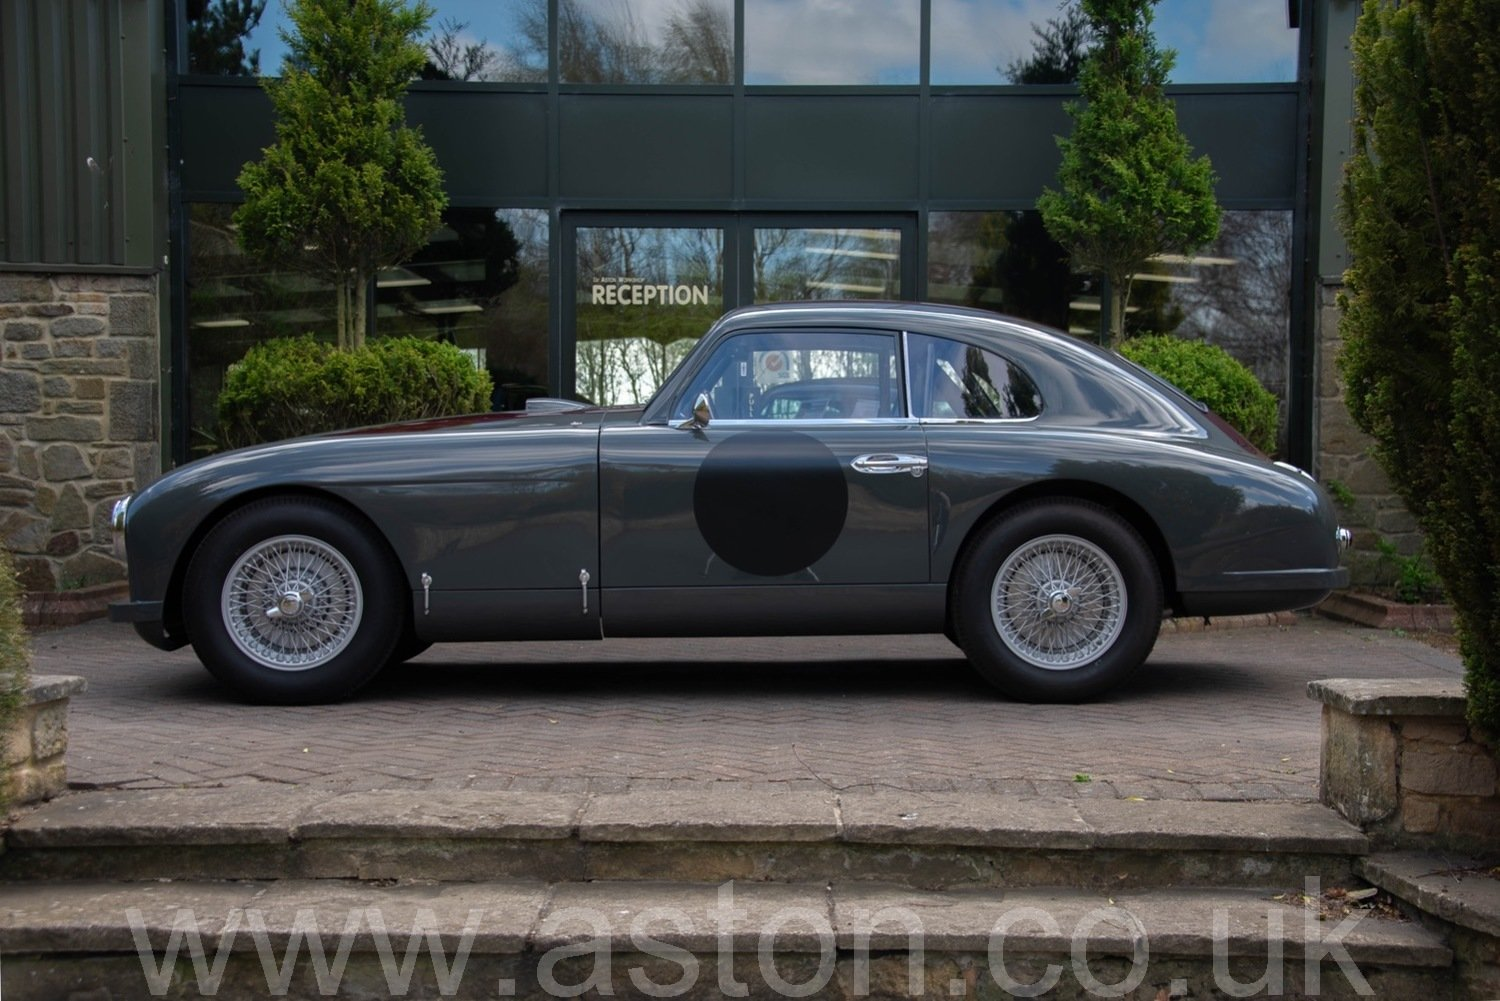 FIA 1952 ASTON MARTIN DB2 Ex-George Abecassis For Sale (picture 2 of 6)